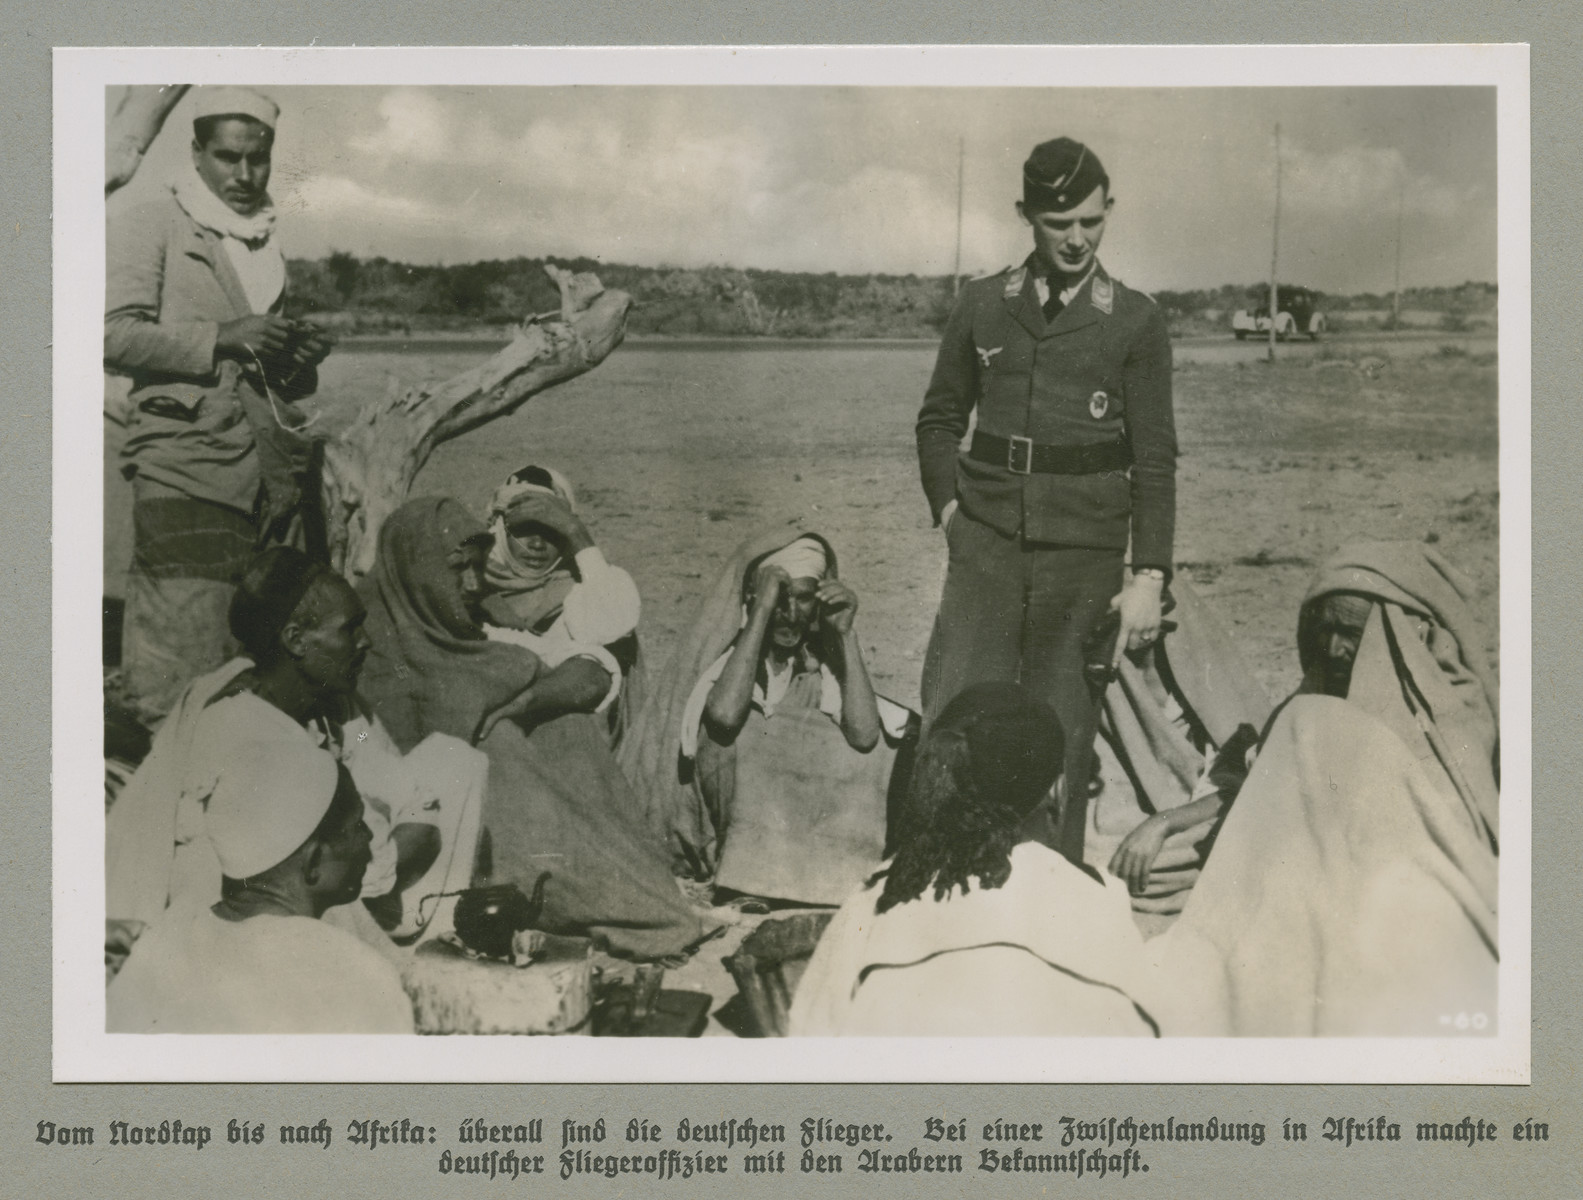 A man in German military uniform stands before a group of Arab men and women.   The original caption reads: From the North Cape all the way to Africa: German airmen are everywhere. A German air force officer makes the acquaintance of Arabs during a stopover in Africa.     Grossdeutschland in Weltgeschehen, Tagesberichte 1941.